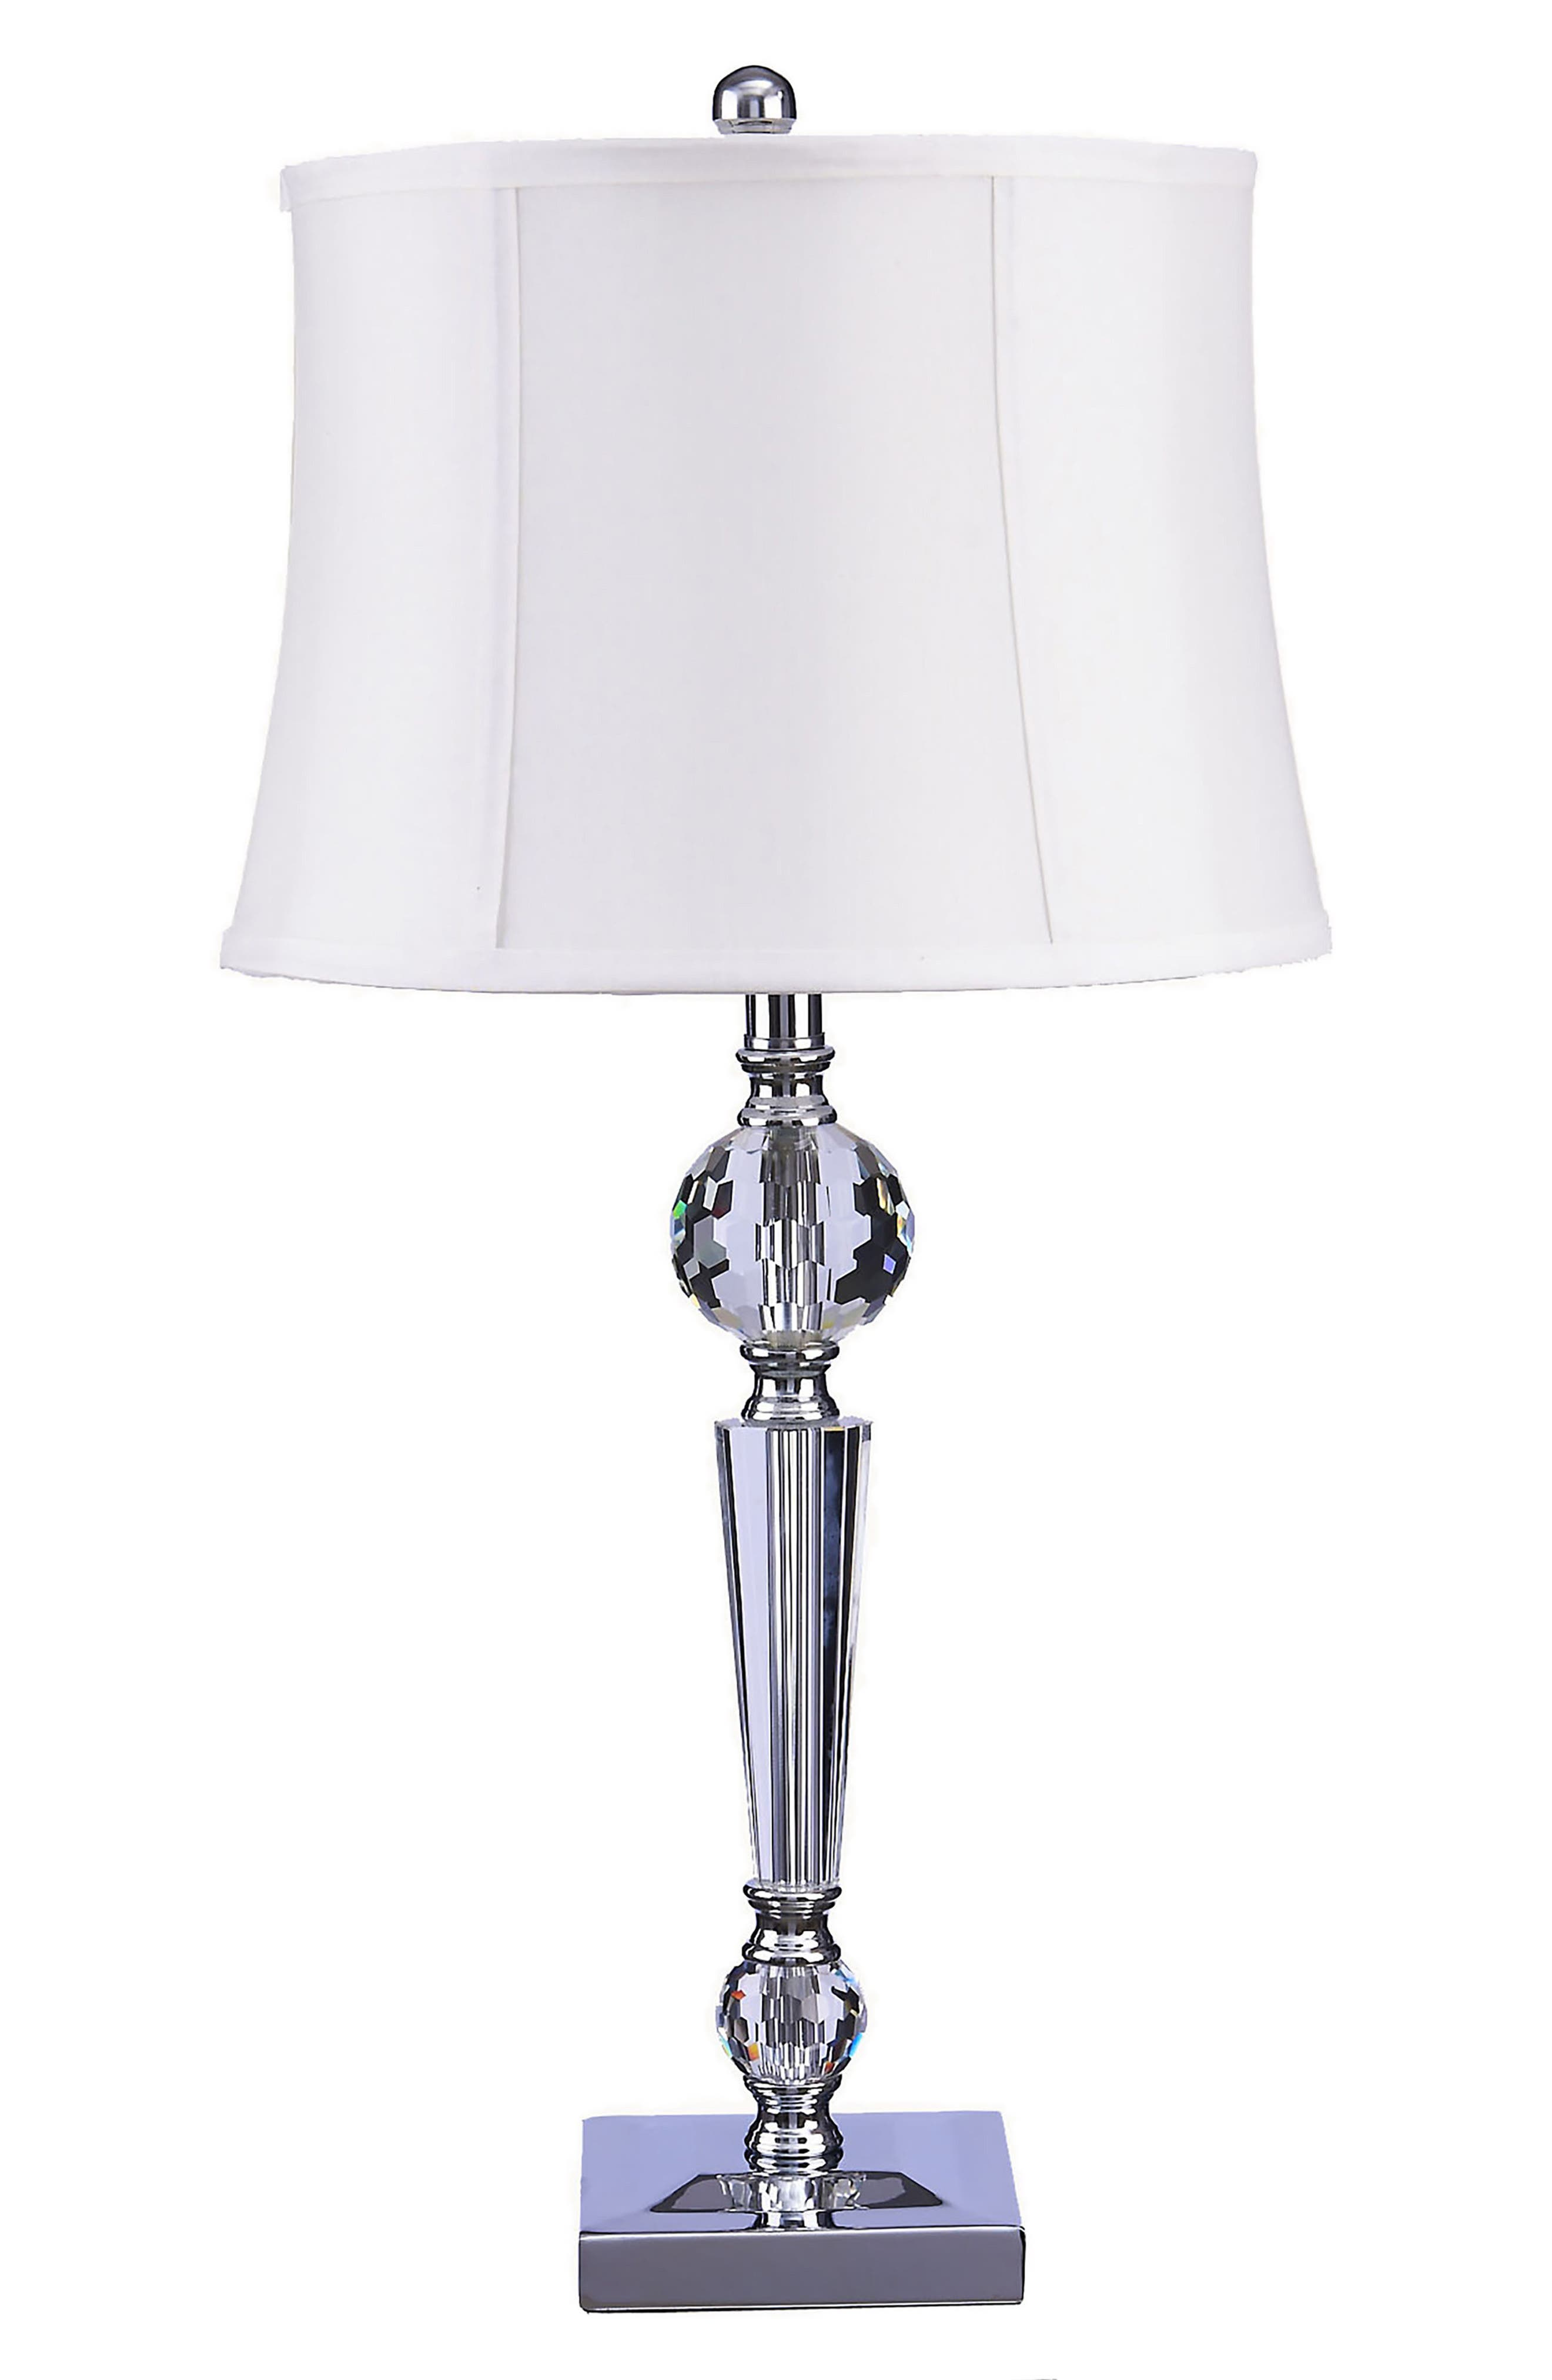 JAlexander Camile Table Lamp